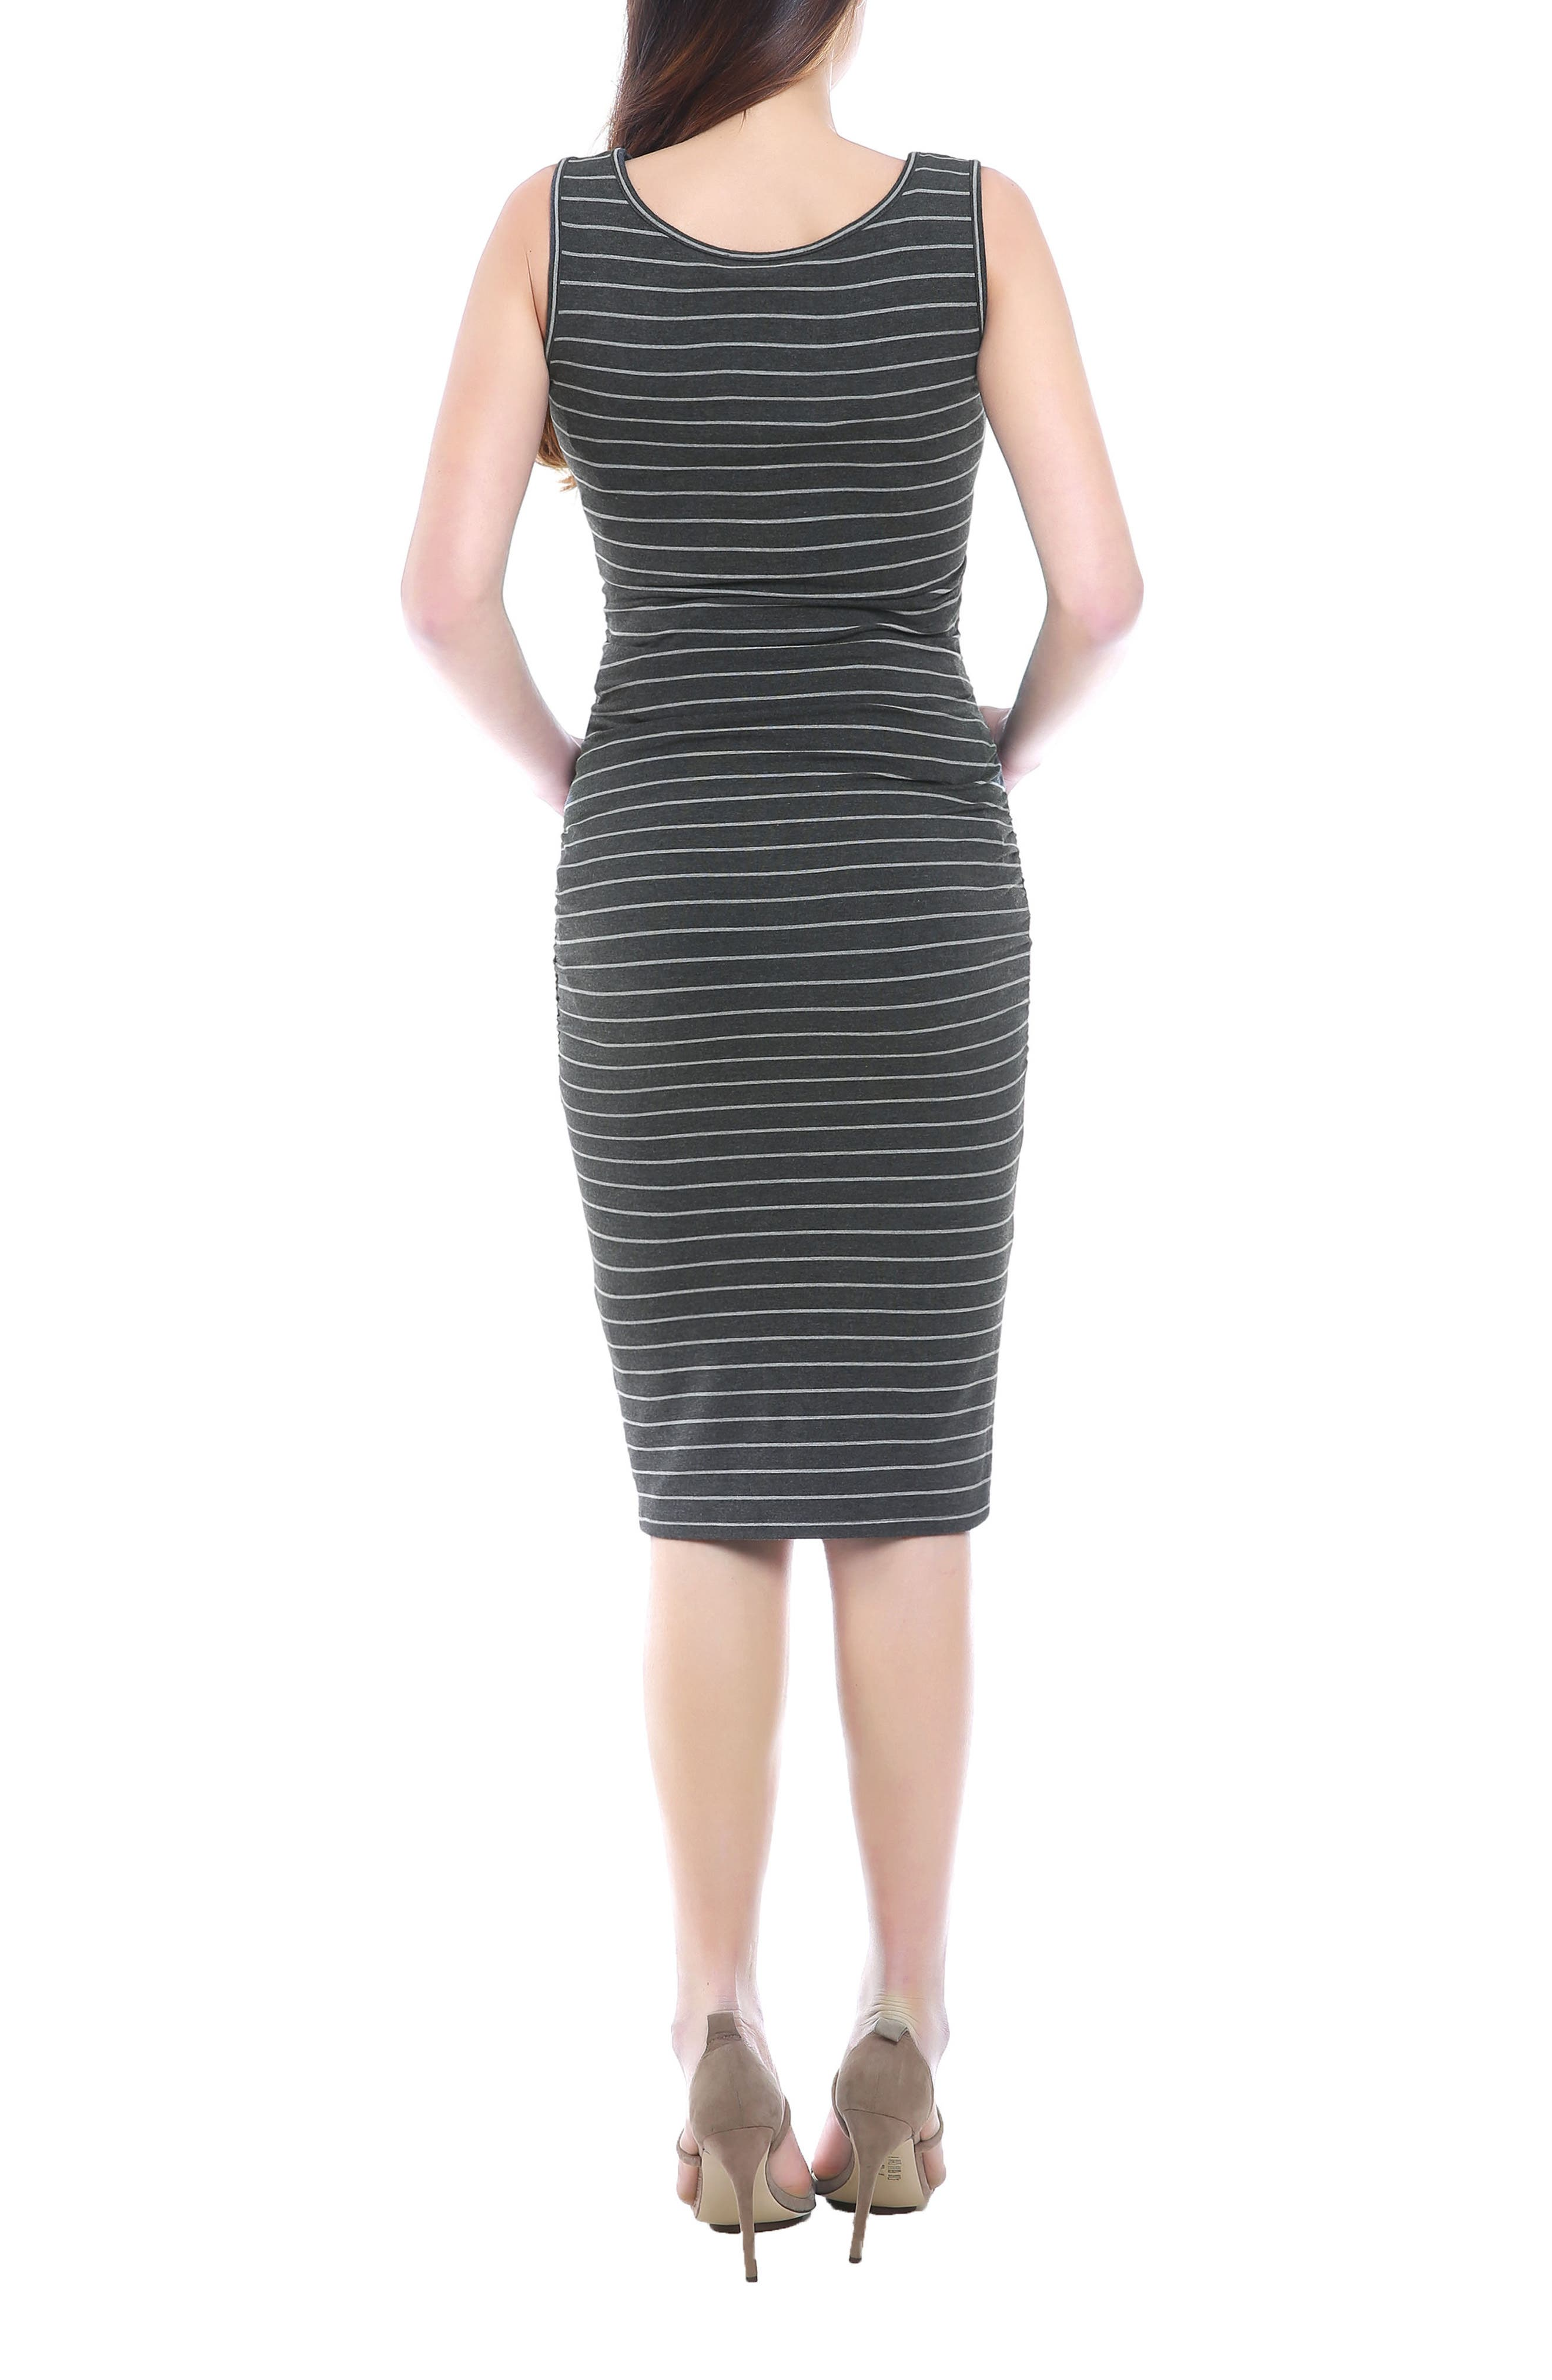 Tobi Stripe Maternity Dress,                             Alternate thumbnail 2, color,                             Dark Gray/ Light Gray